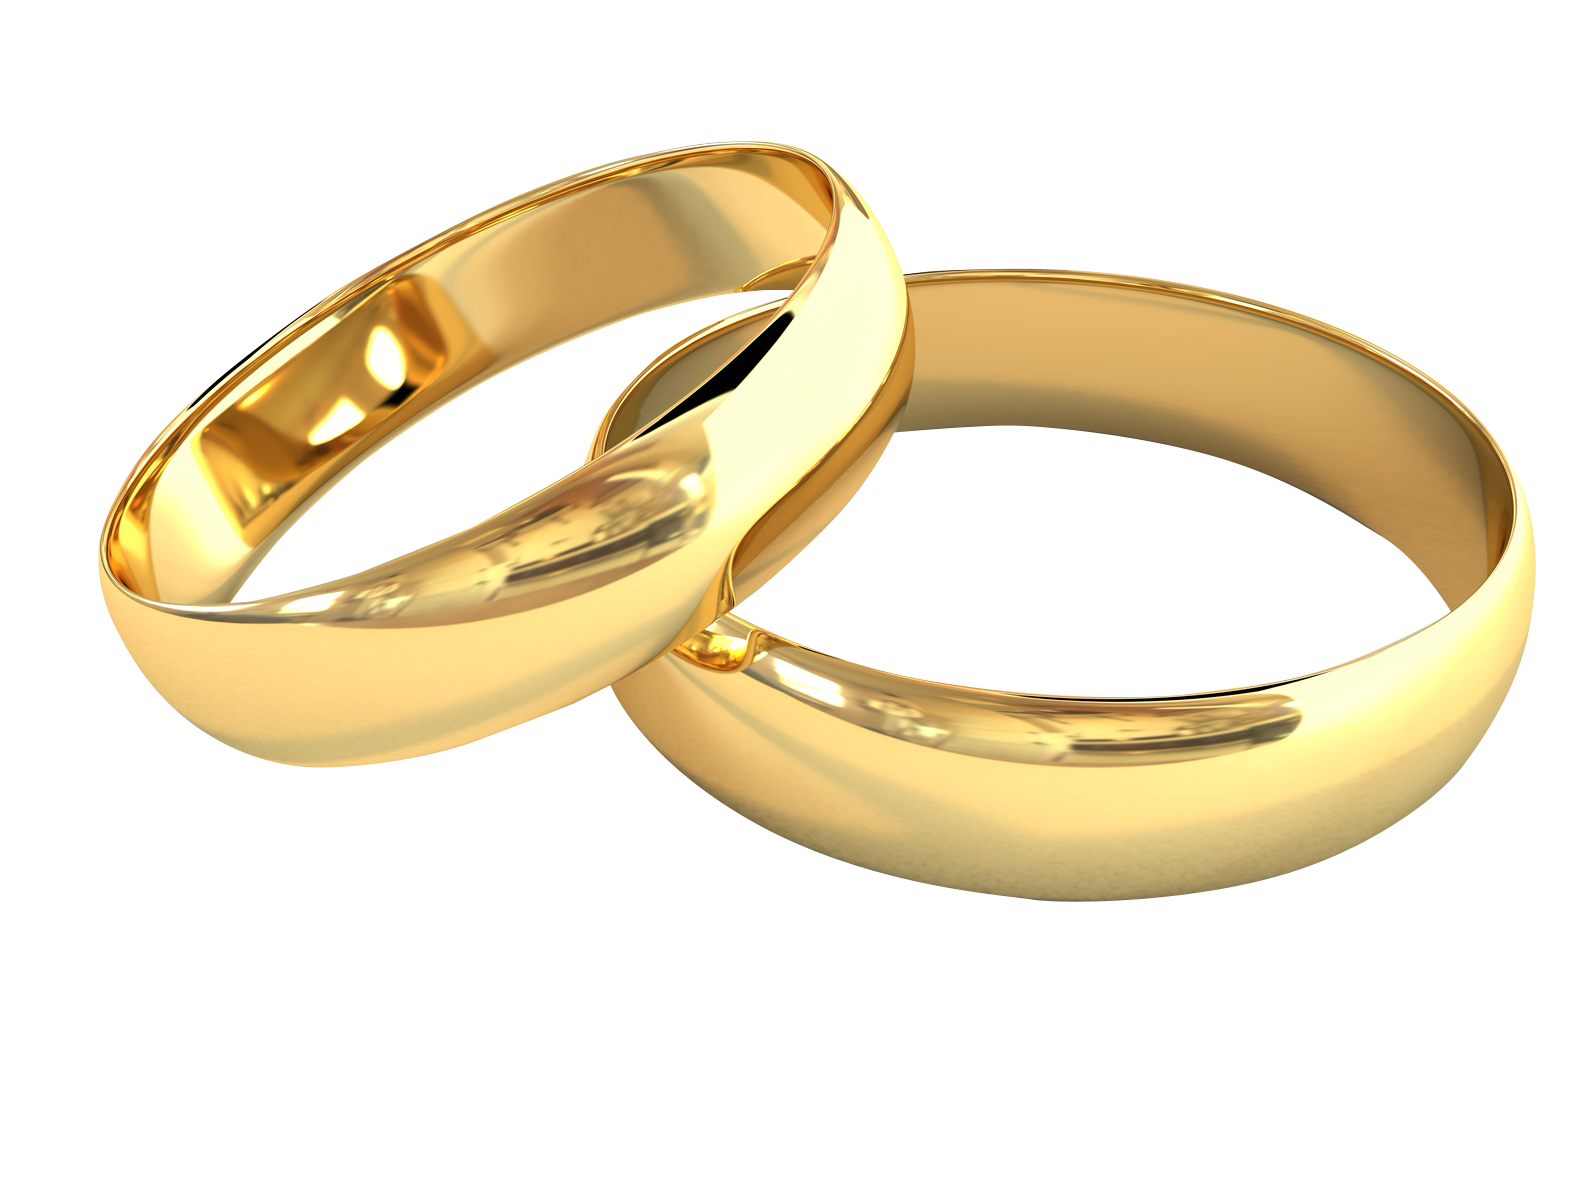 faith is like a wedding ringwhich the christian becomes joined